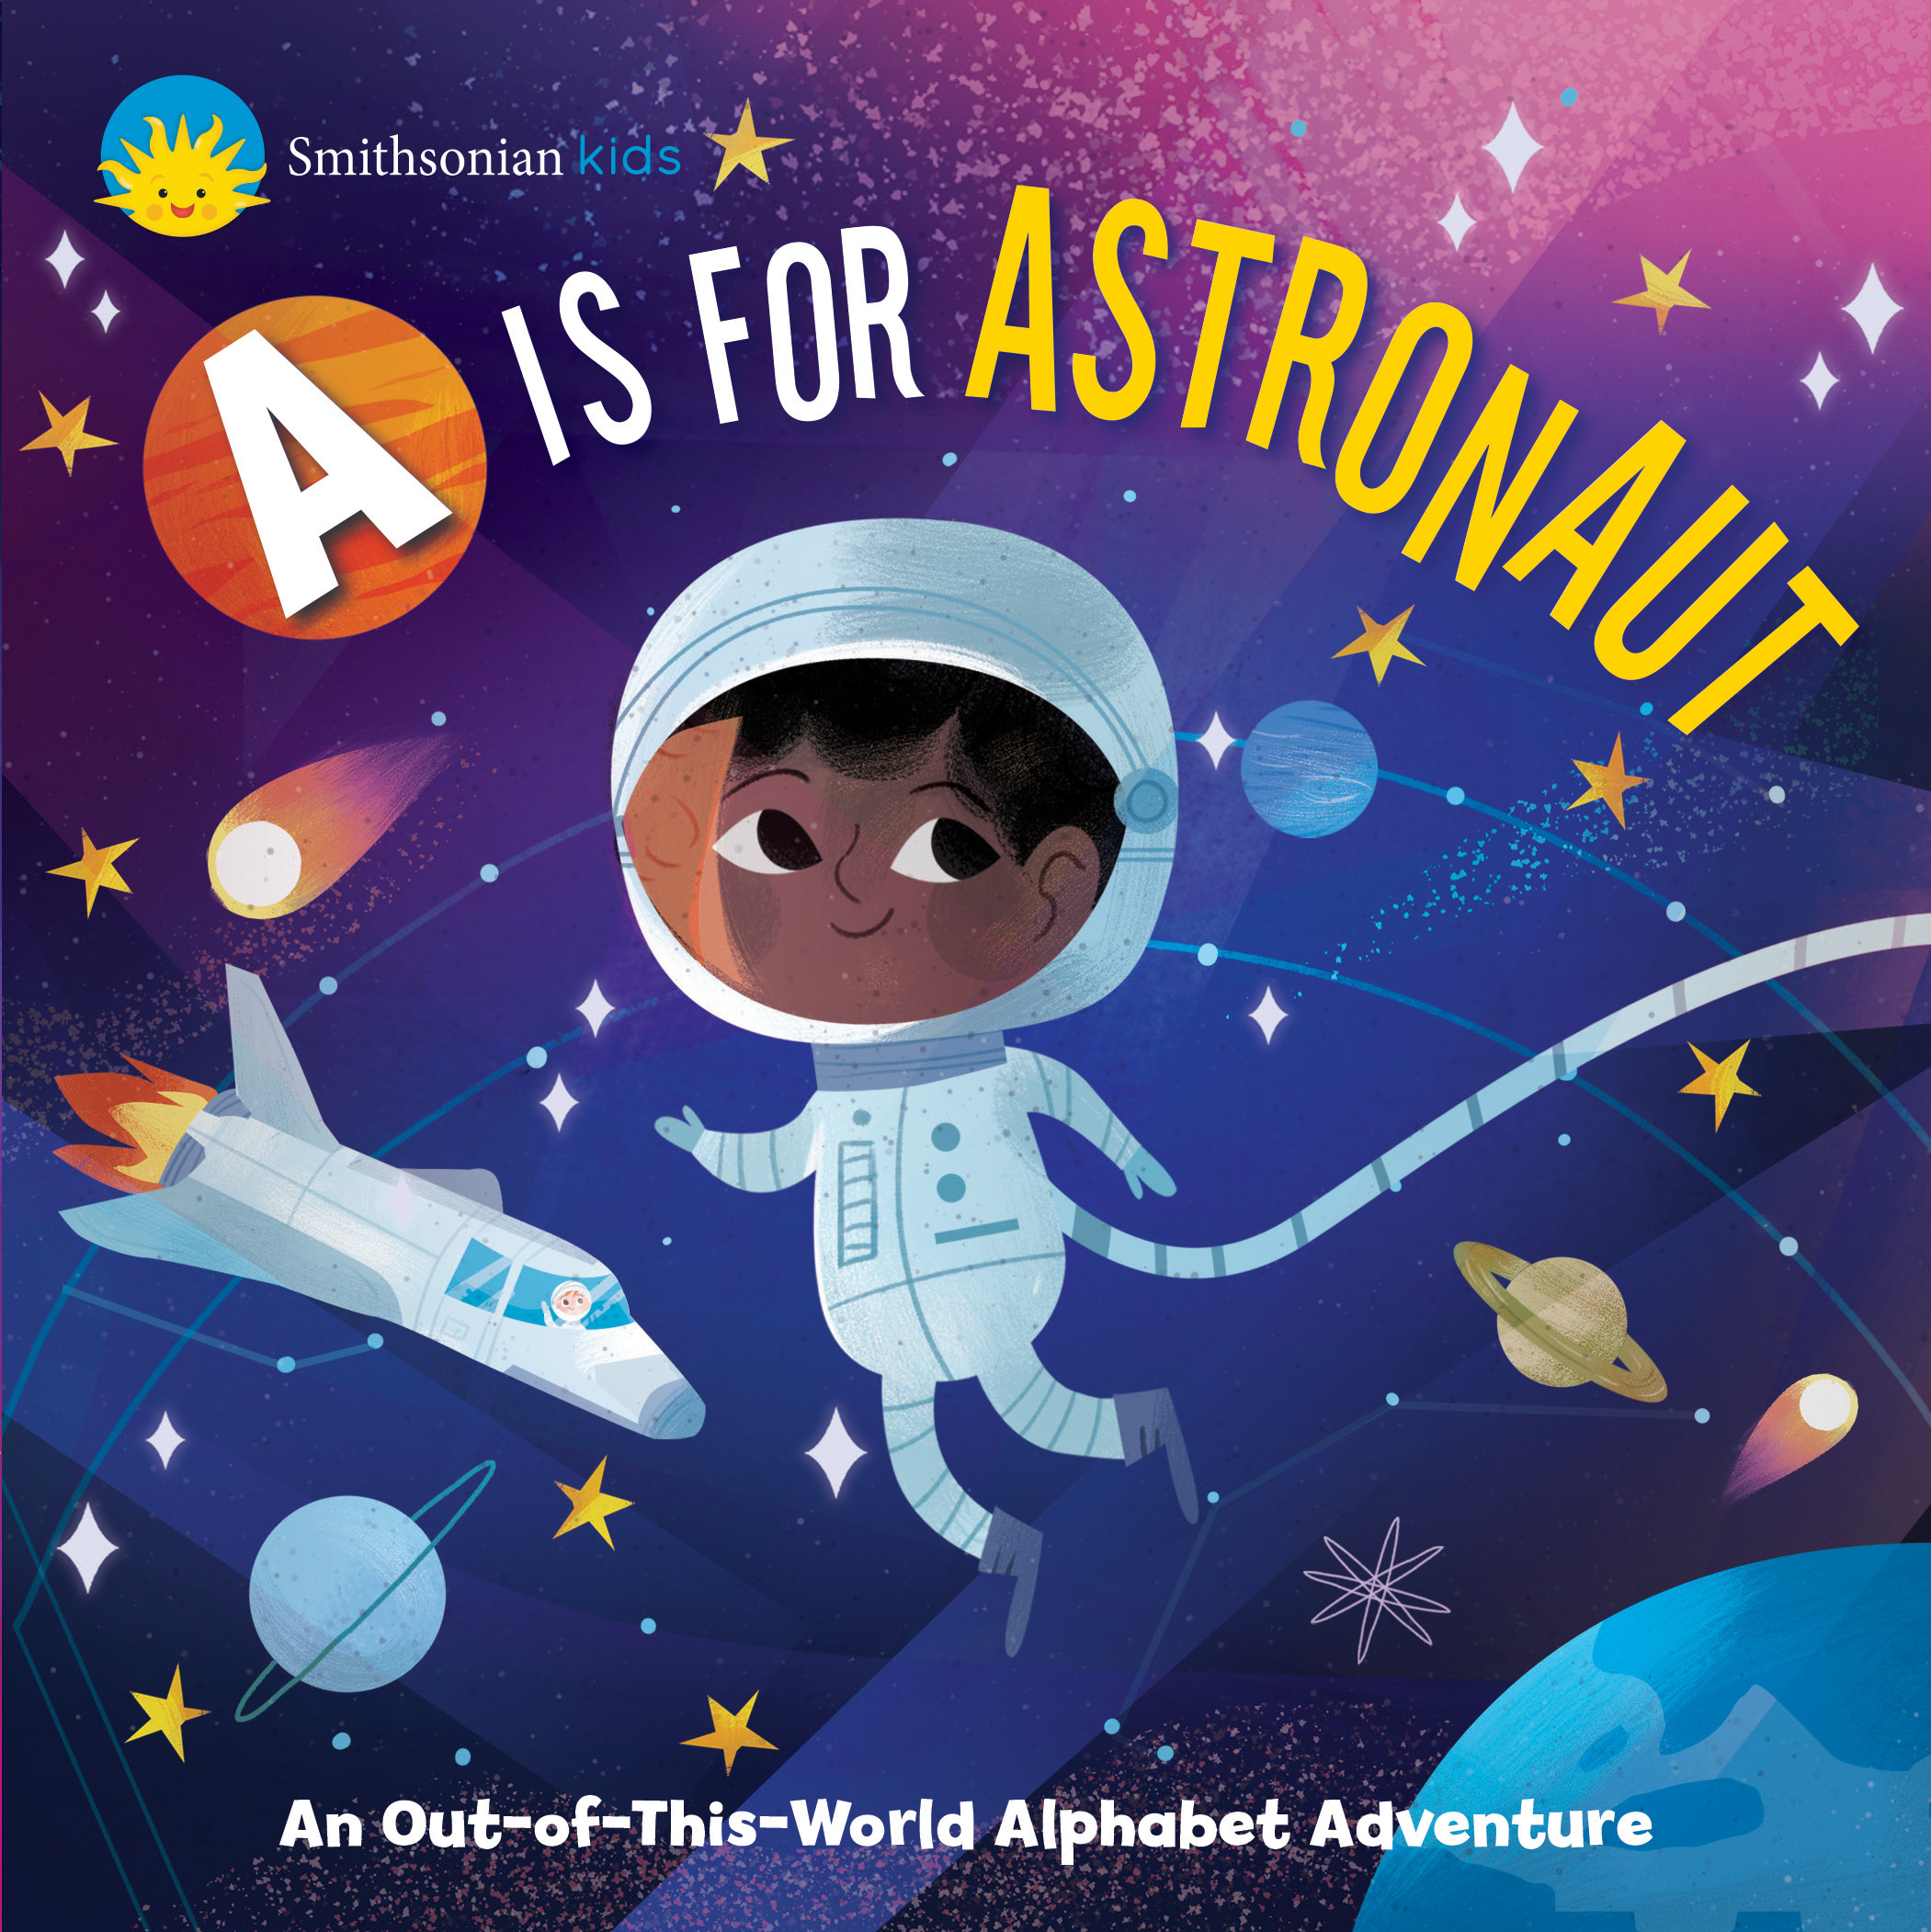 Smithsonian Kids: A is for Astronaut